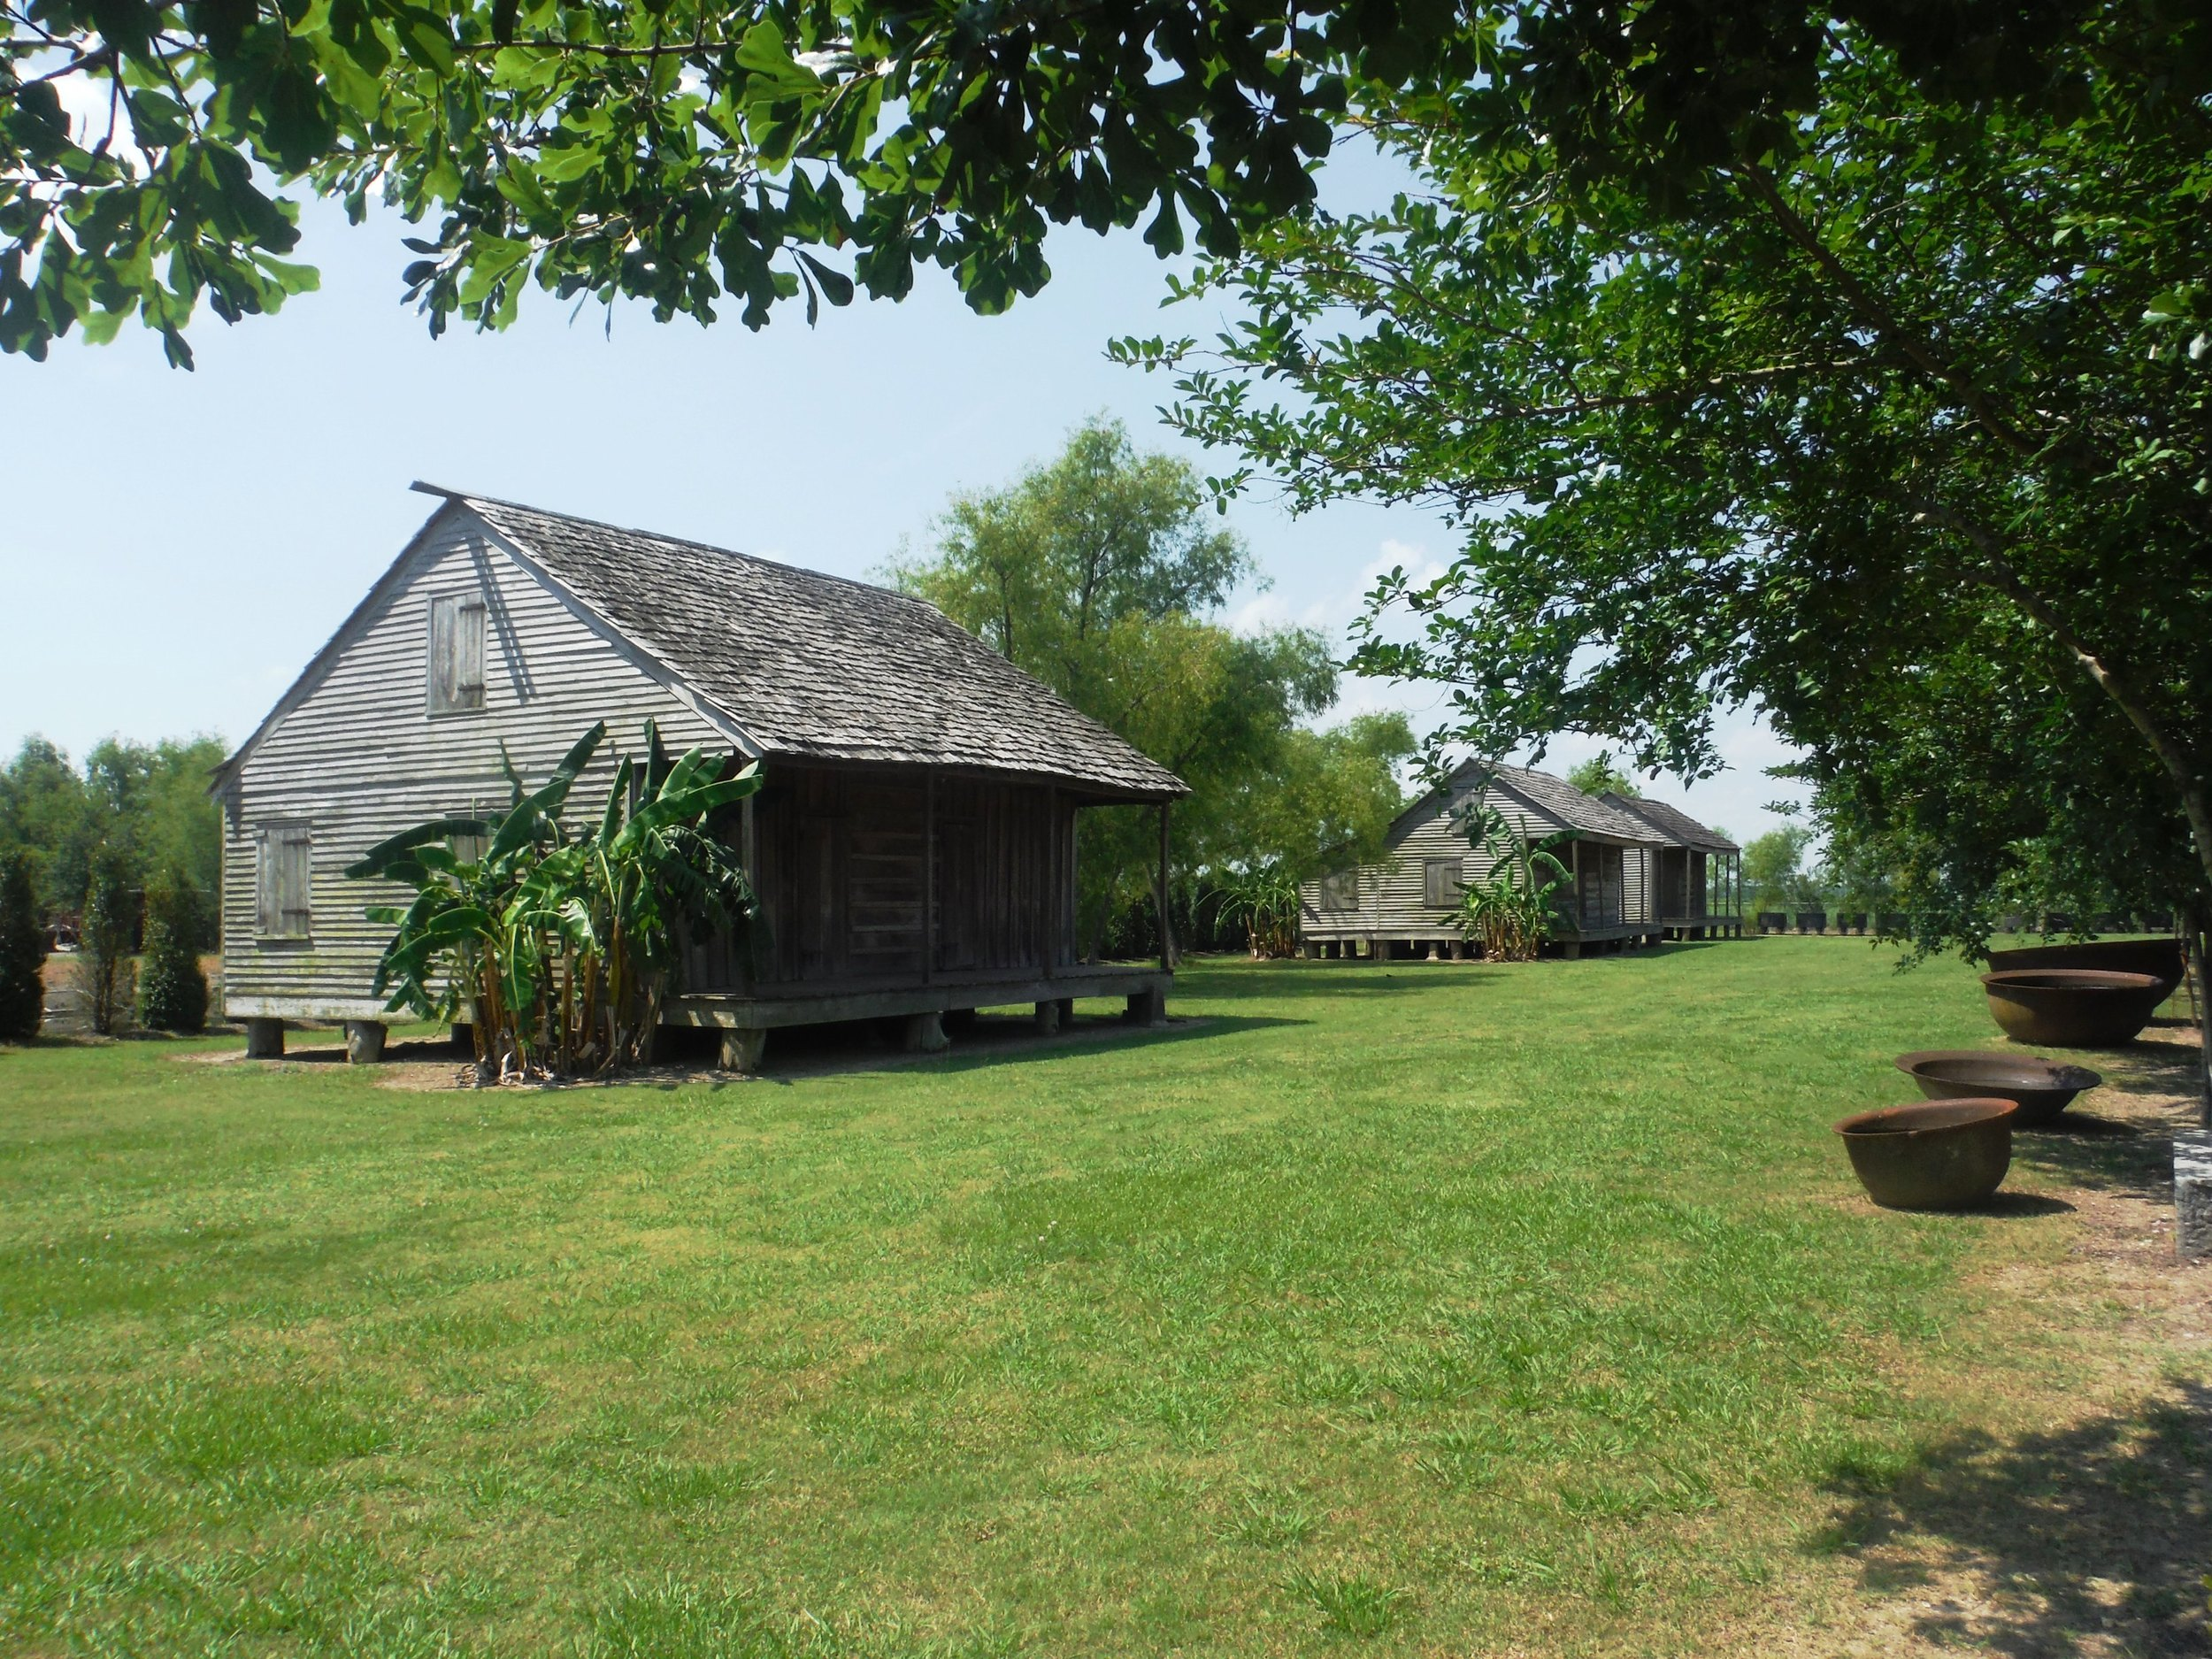 Slave cabins at the Whitney Plantation were preserved and grouped on the site from neighboring plantations. Old sugar processing bowls lie in the hot sun to the right of the cabins.